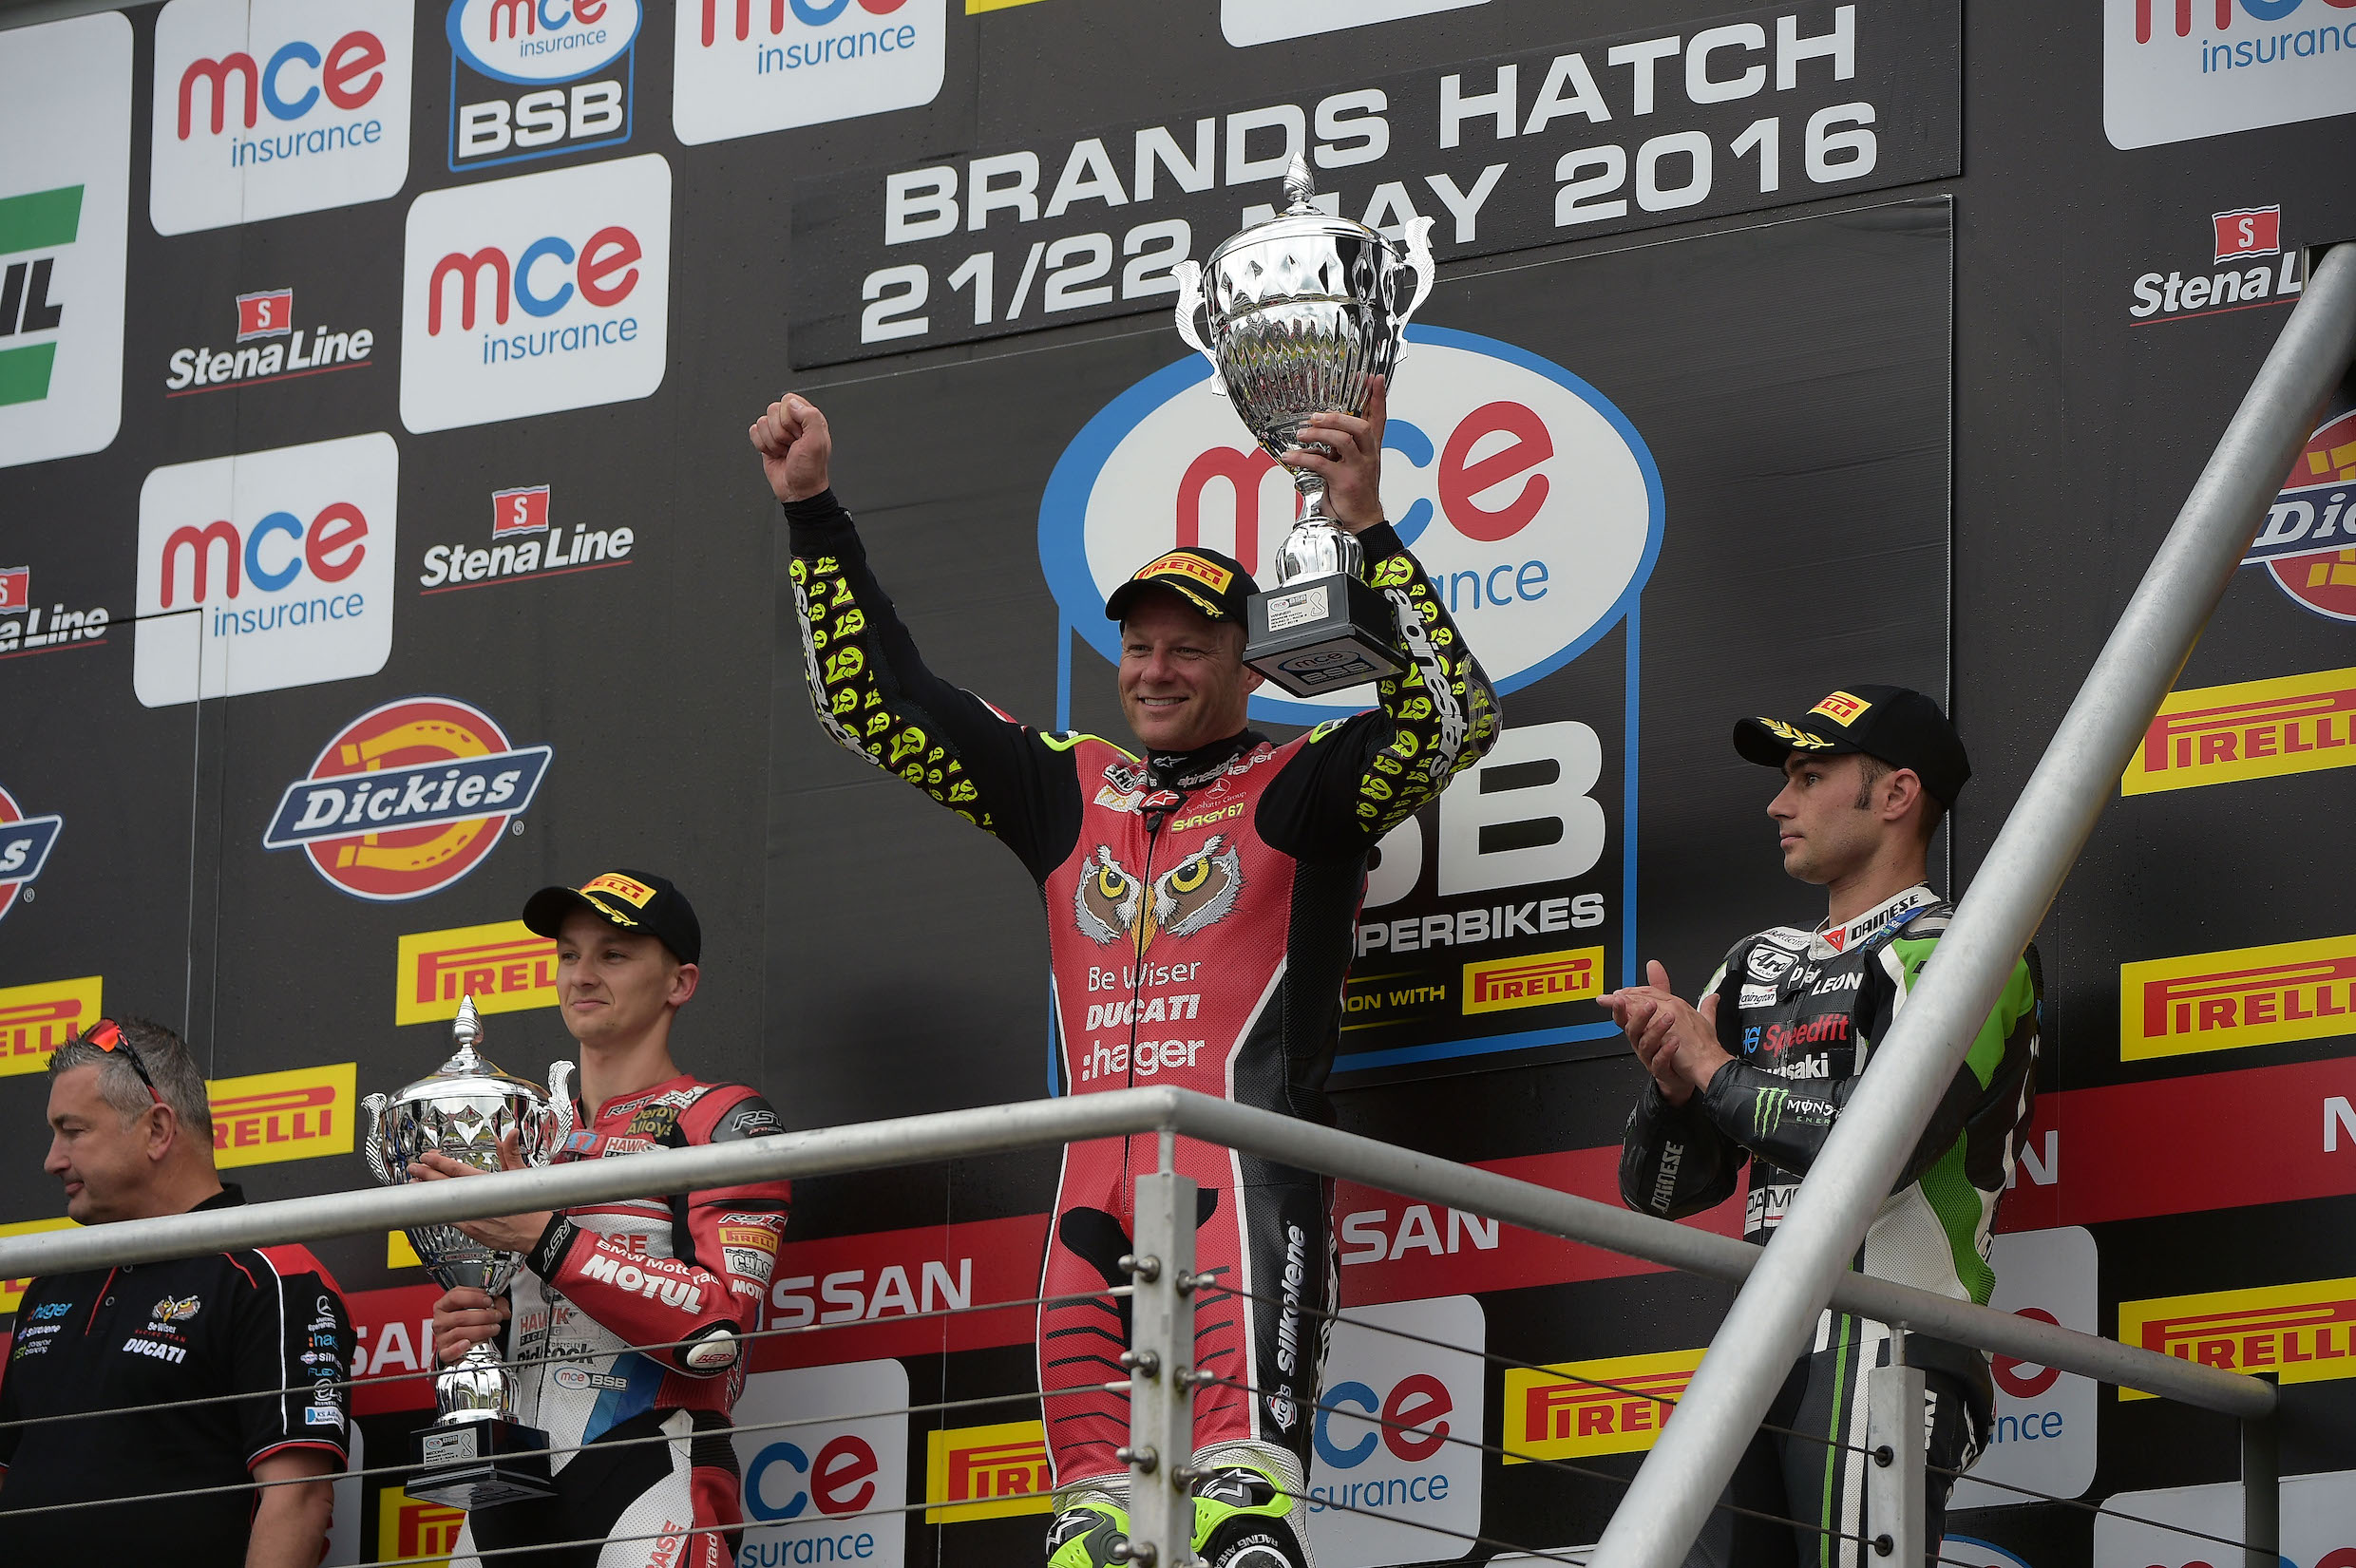 Shakey shakes off his Ducati worries as he reaches the podium at Brands.